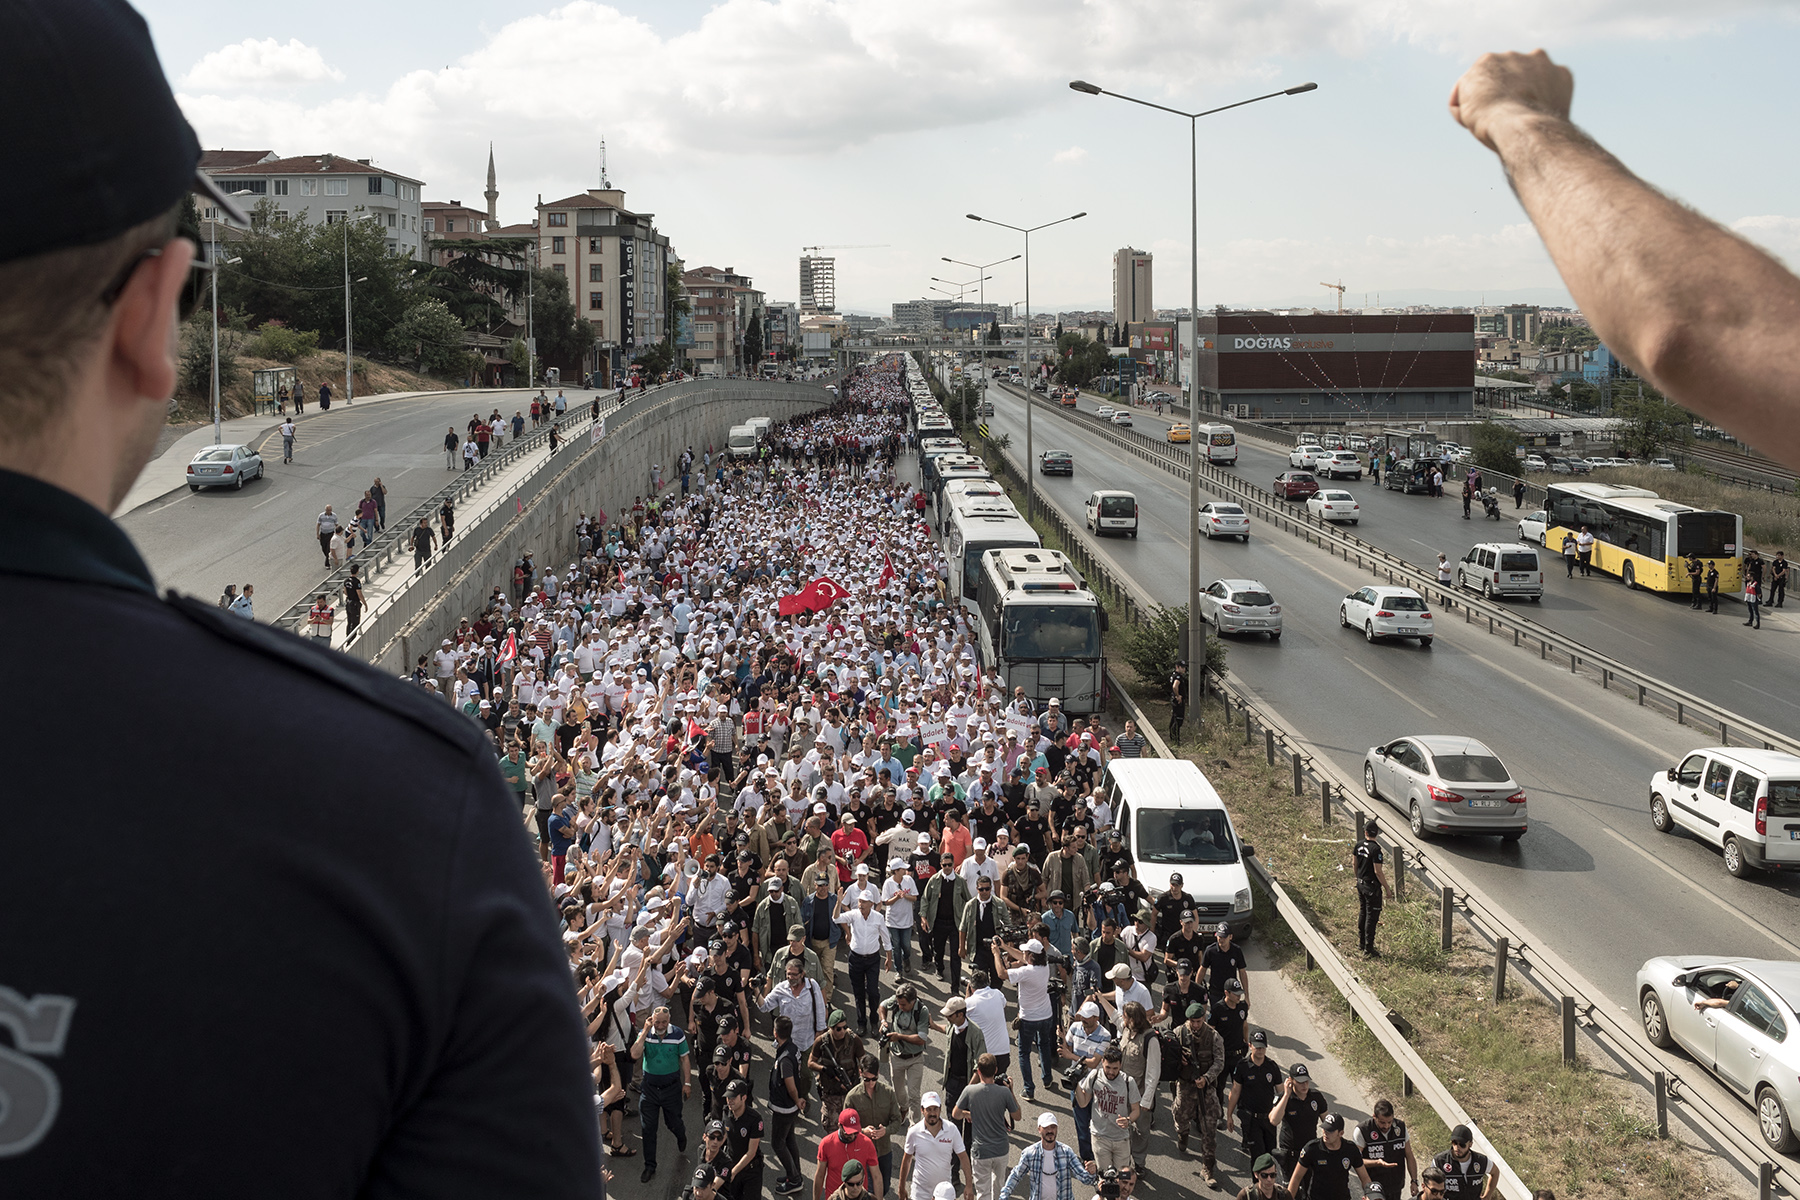 Tens of thousands supporters follow Turkey's main opposition Republican People Party (CHP) leader Kemal Kilicdaroglu as he arrives in Istanbul on day 24 after walking more than 400km from Ankara, Turkey, Saturday, July 8, 2017. Kilicdaroglu accuses President Erdogan of interference in court case of Enis Berberoglu, a CHP deputy who was sentenced to 25 years in jail for espionnage.